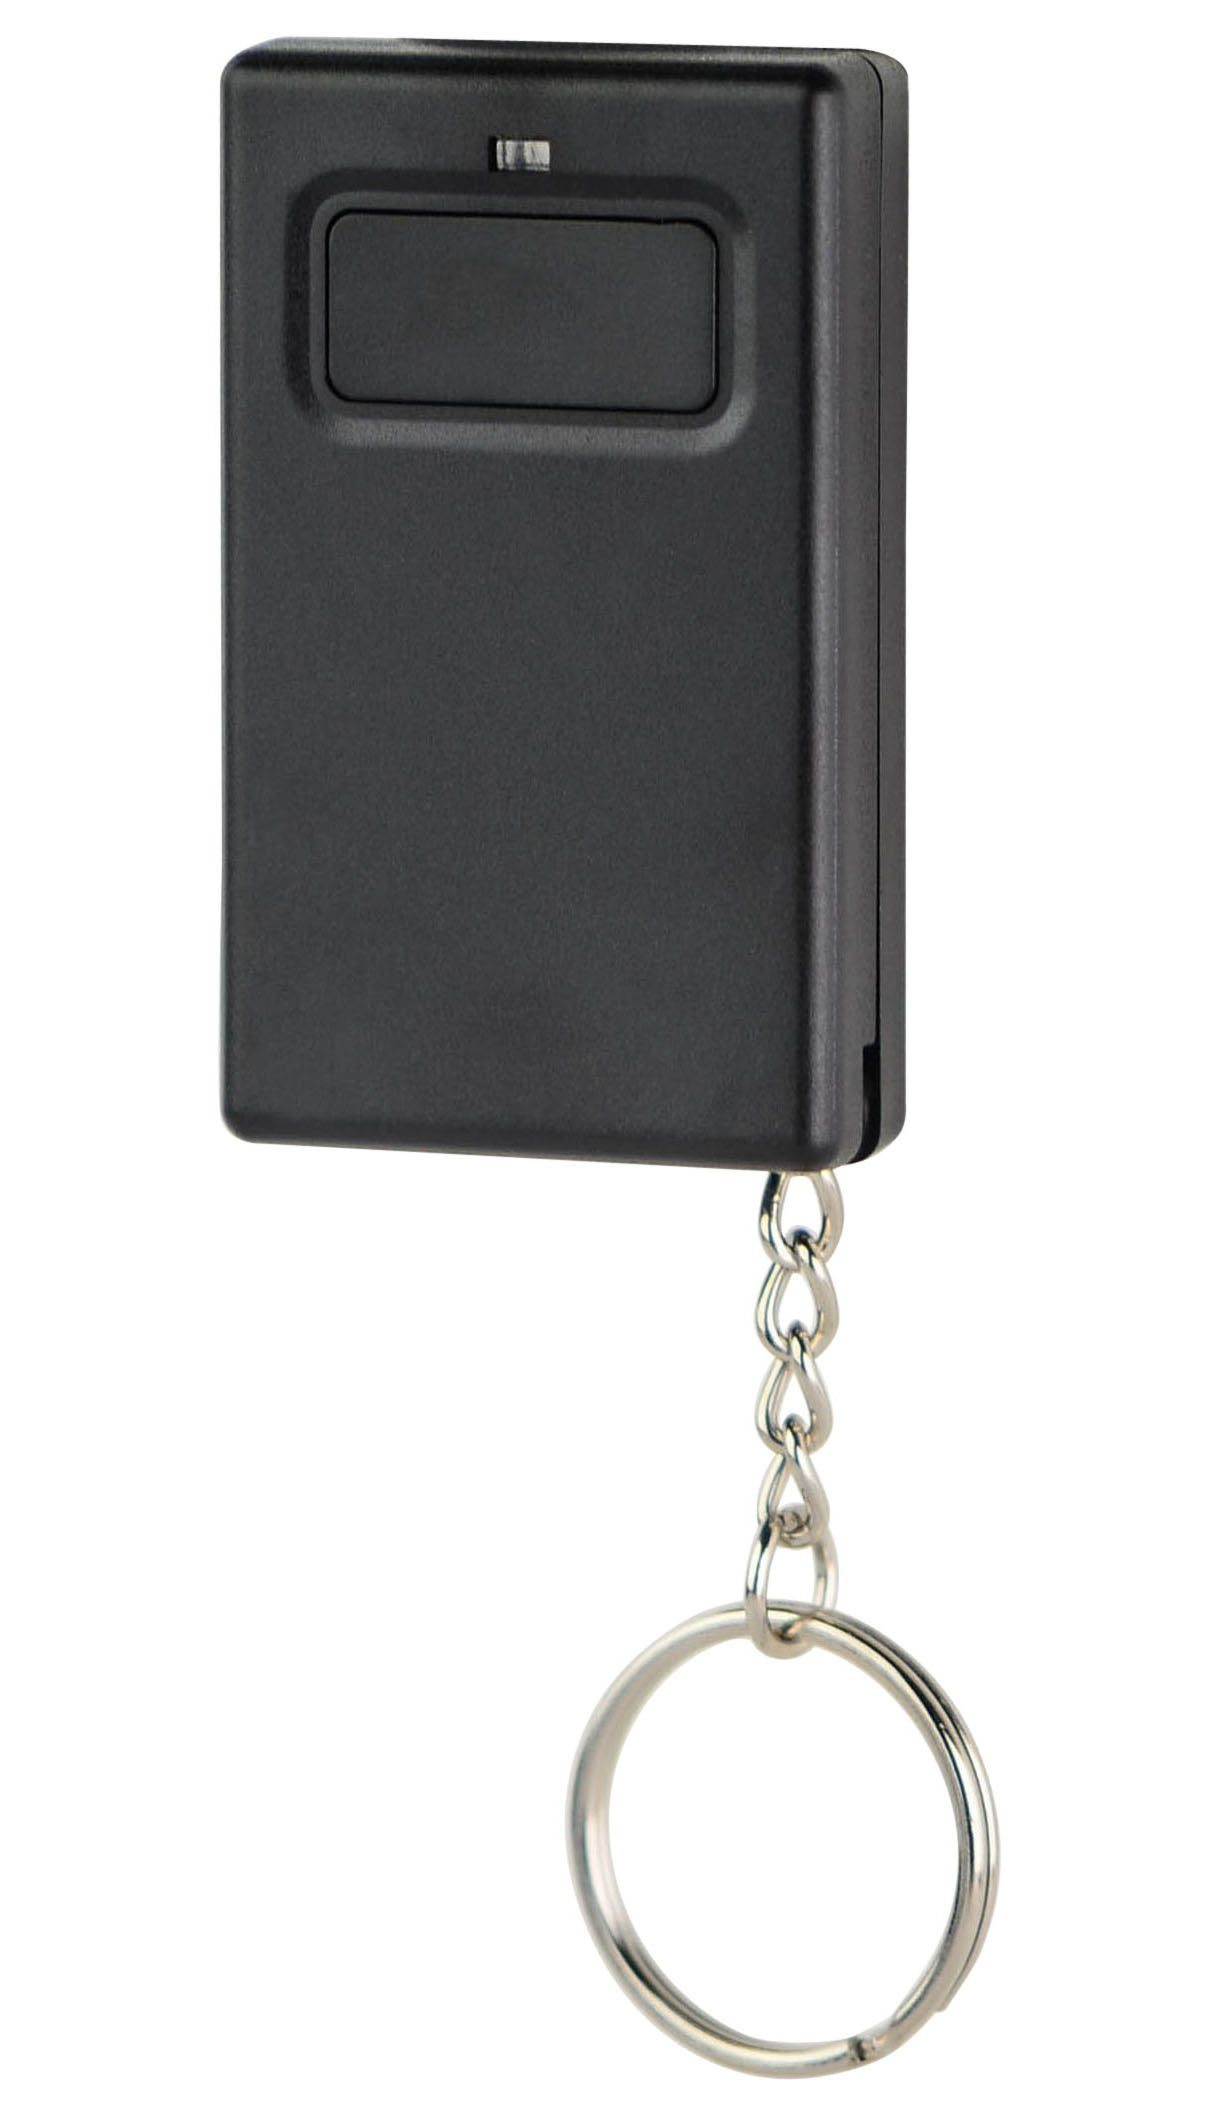 North Shore Commercial Door NSCD-300MK1 Keychain Remote (Not Universal Works Only with 300MHZ 10 Dip Switch Systems) by Northshorecommercialdoor (Image #1)